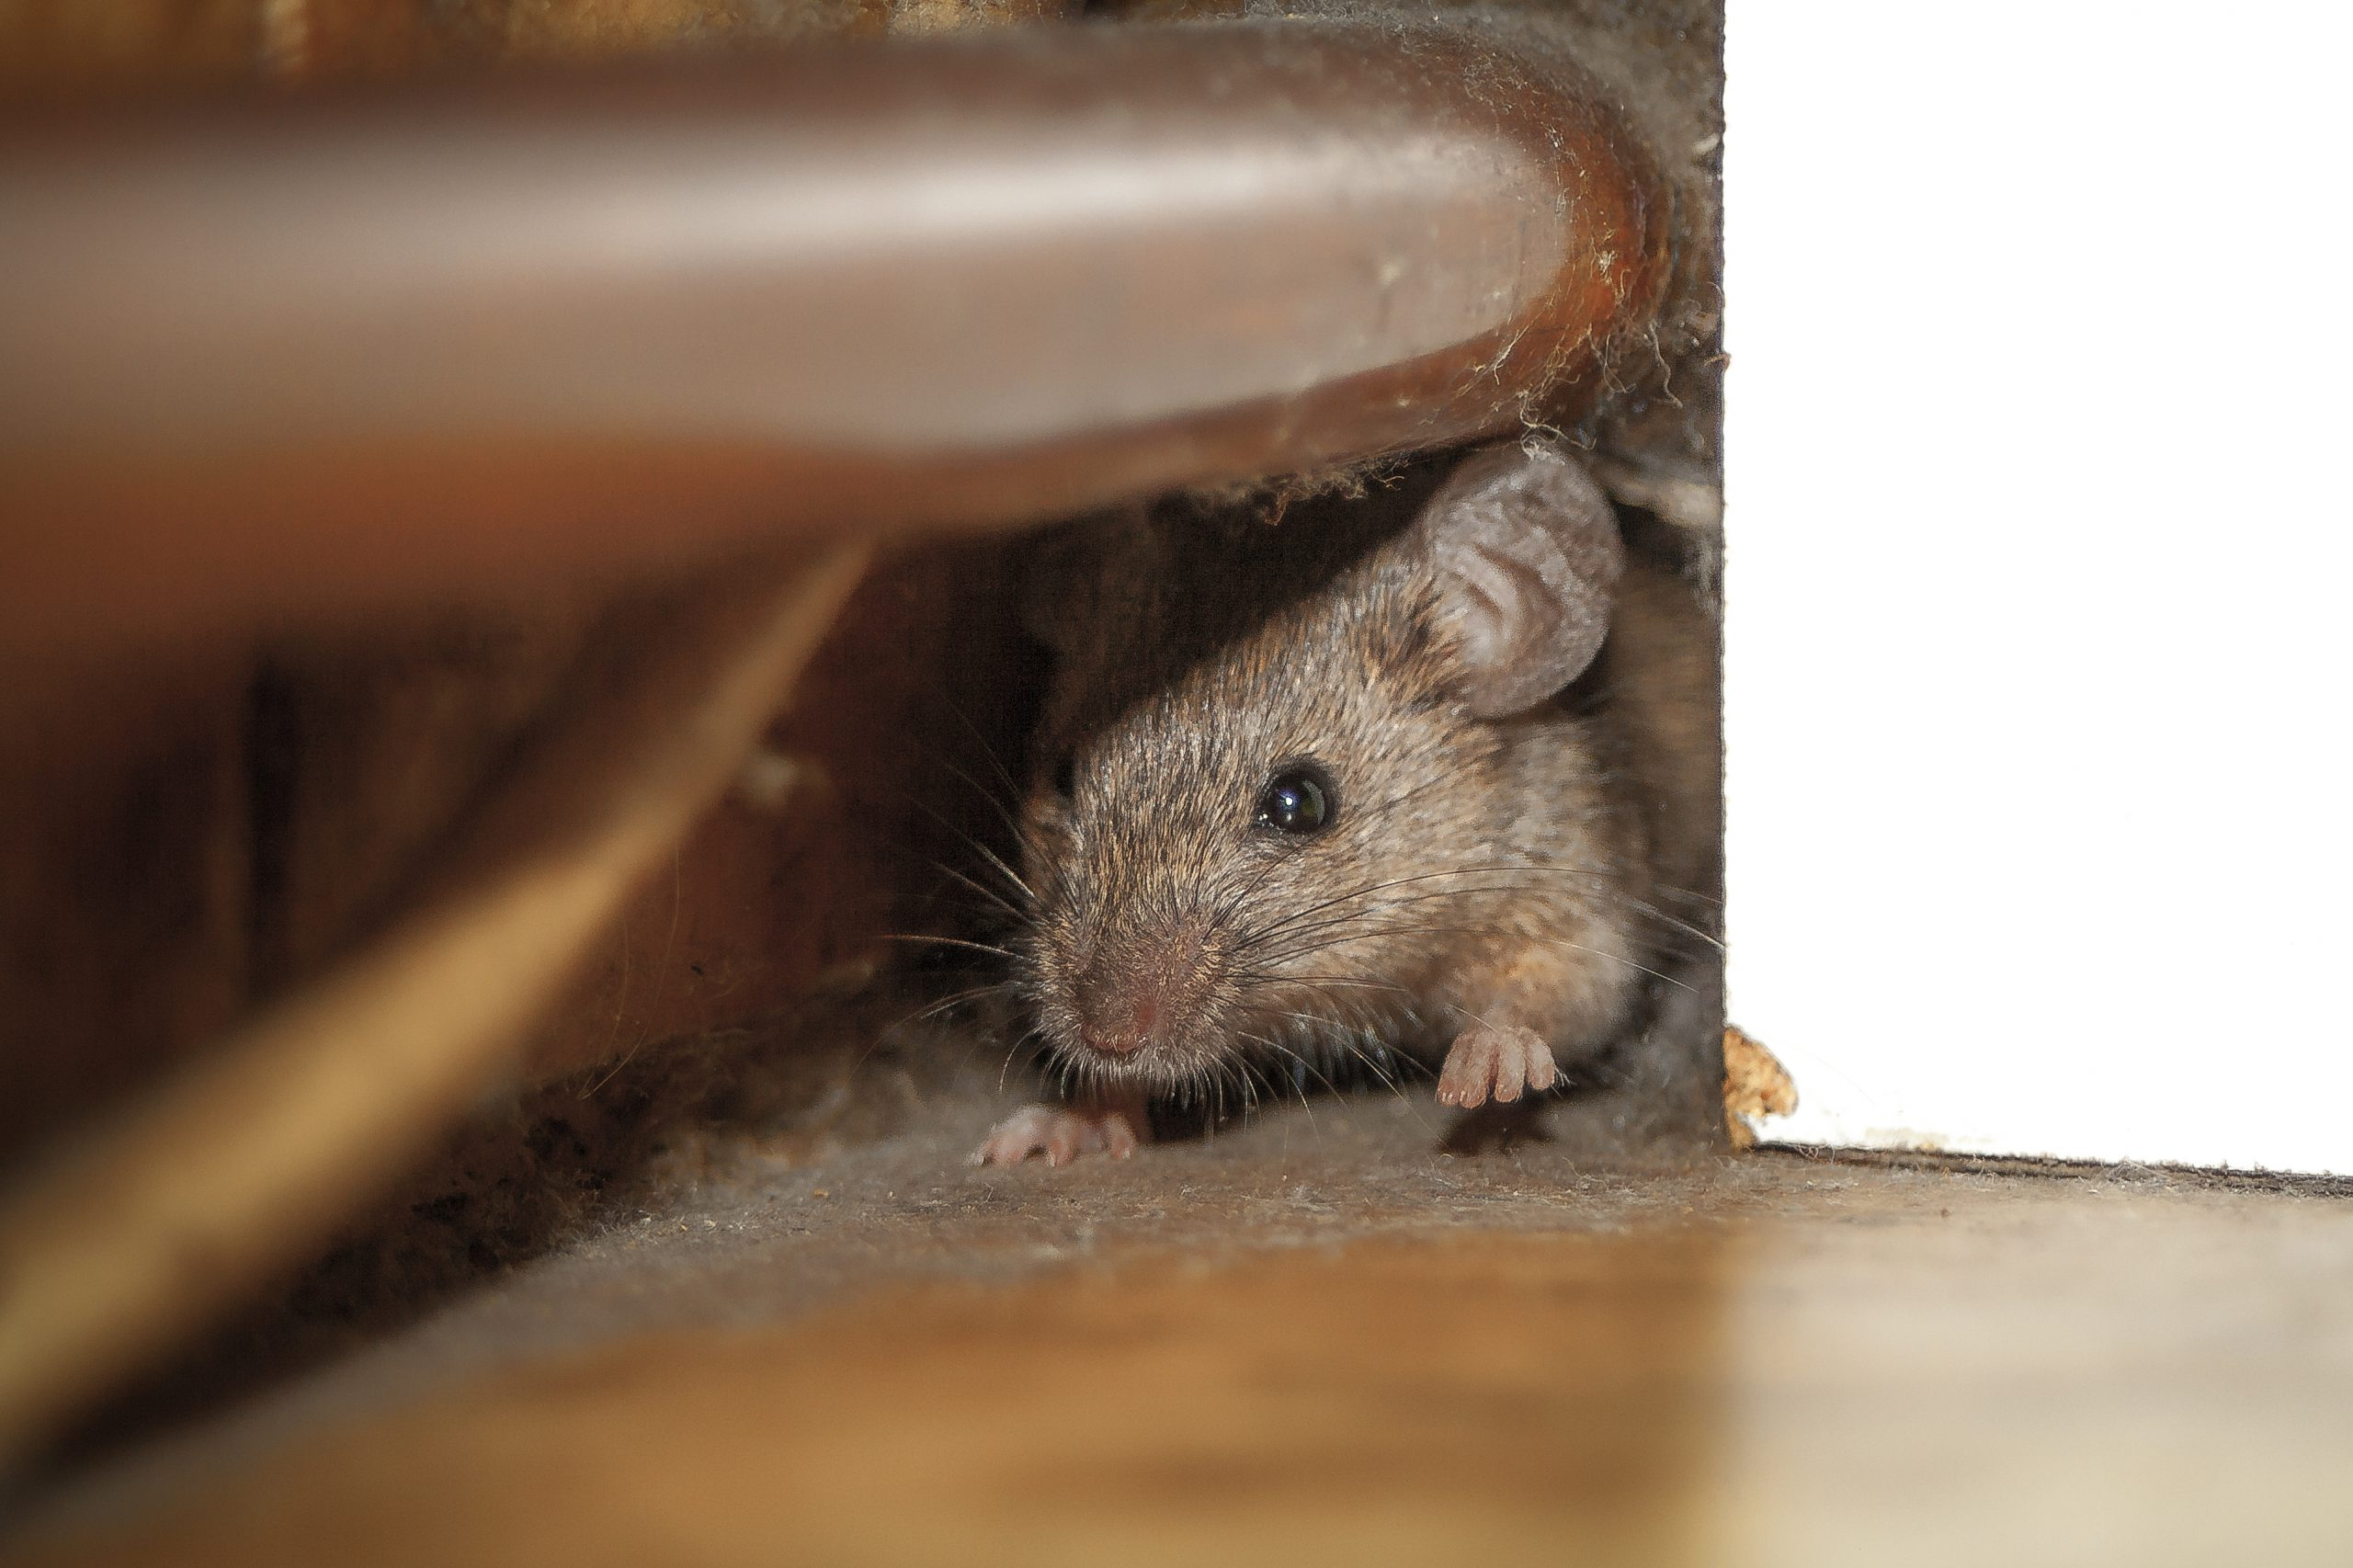 The Best Way to Get Rid of Rats